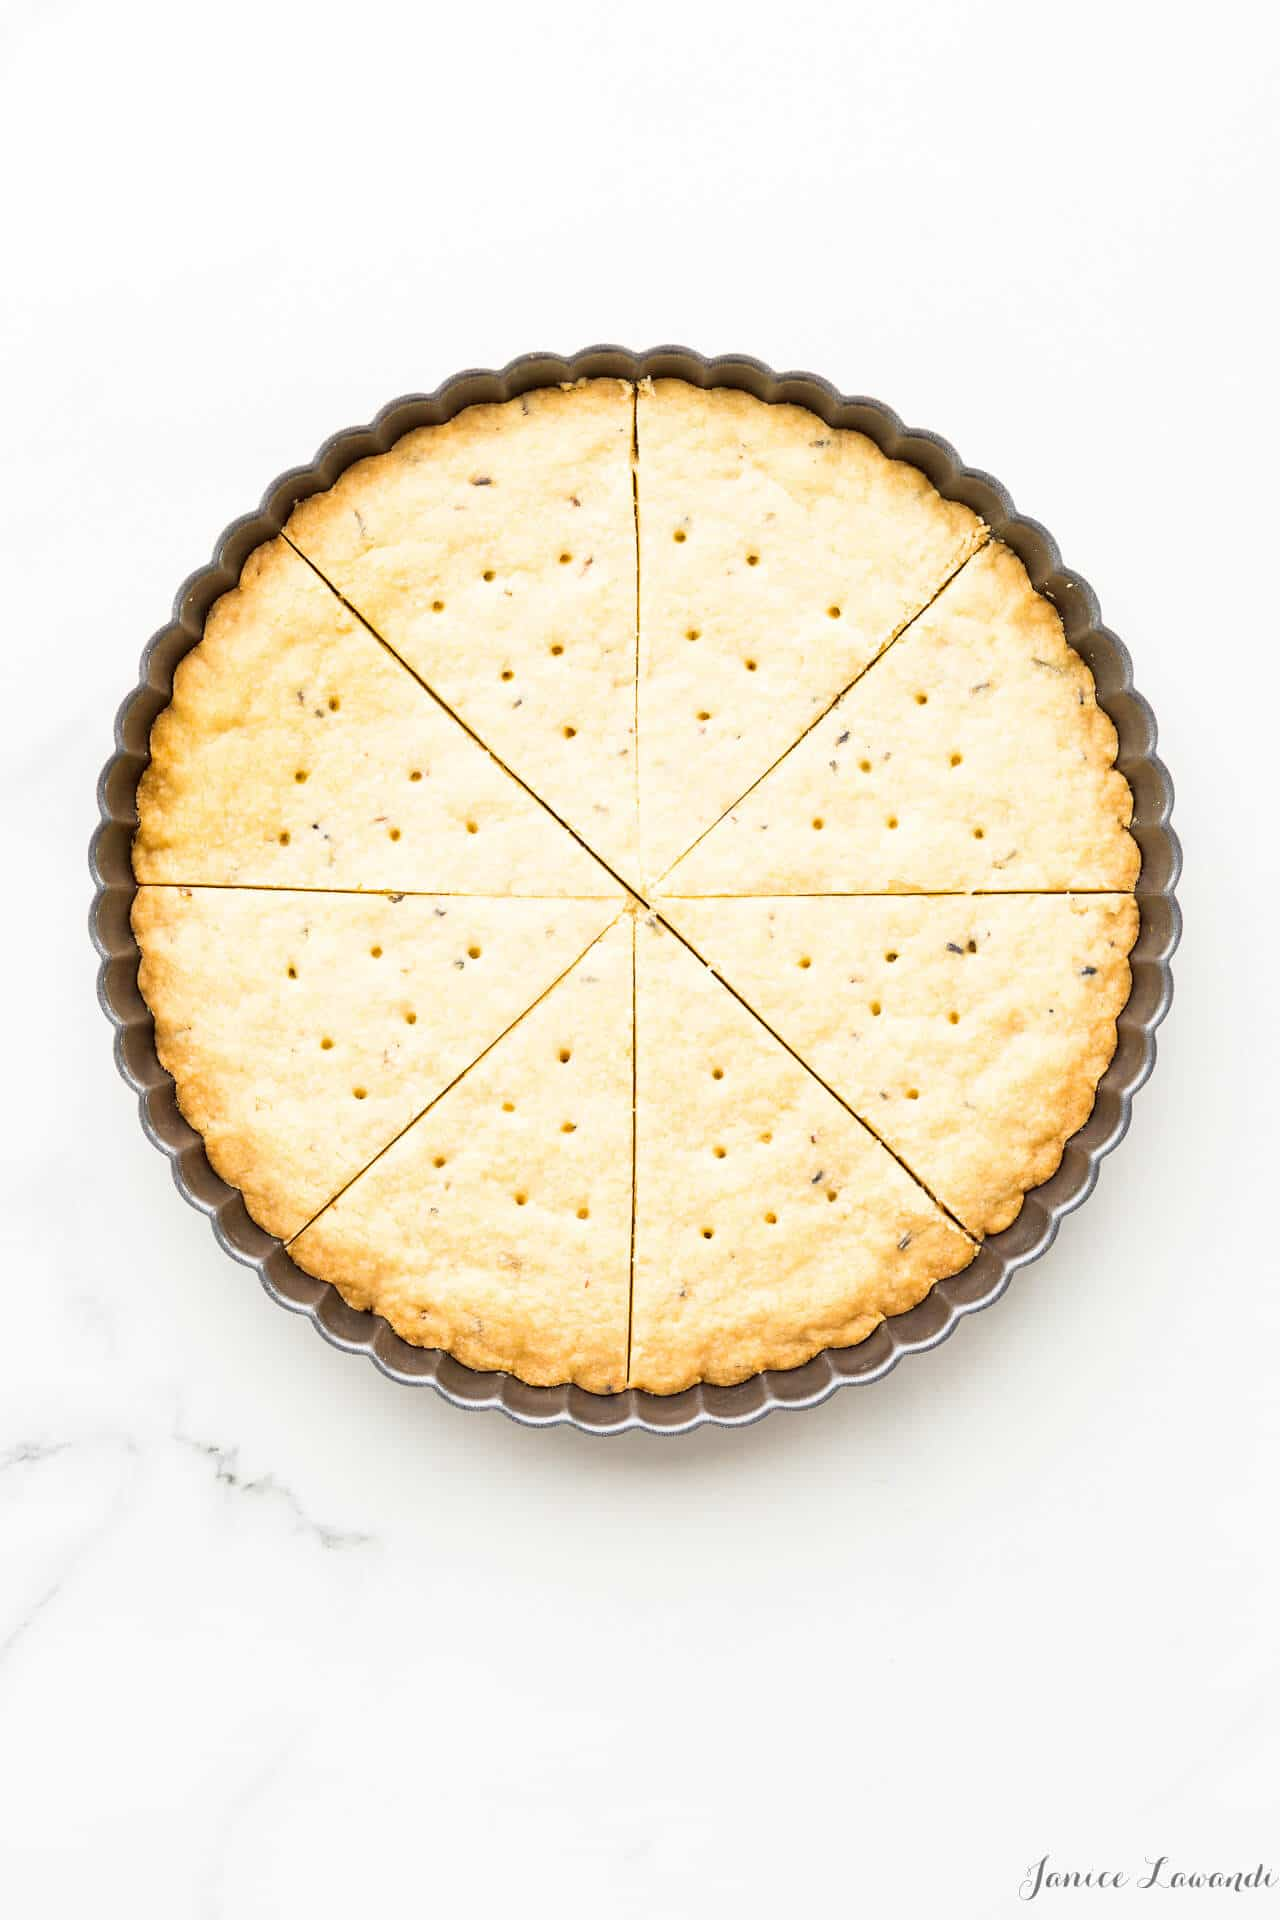 Press shortbread cookie dough into a tart pan with a crinkled edge, score, bake, and cut again for perfect triangle shortbread wedges